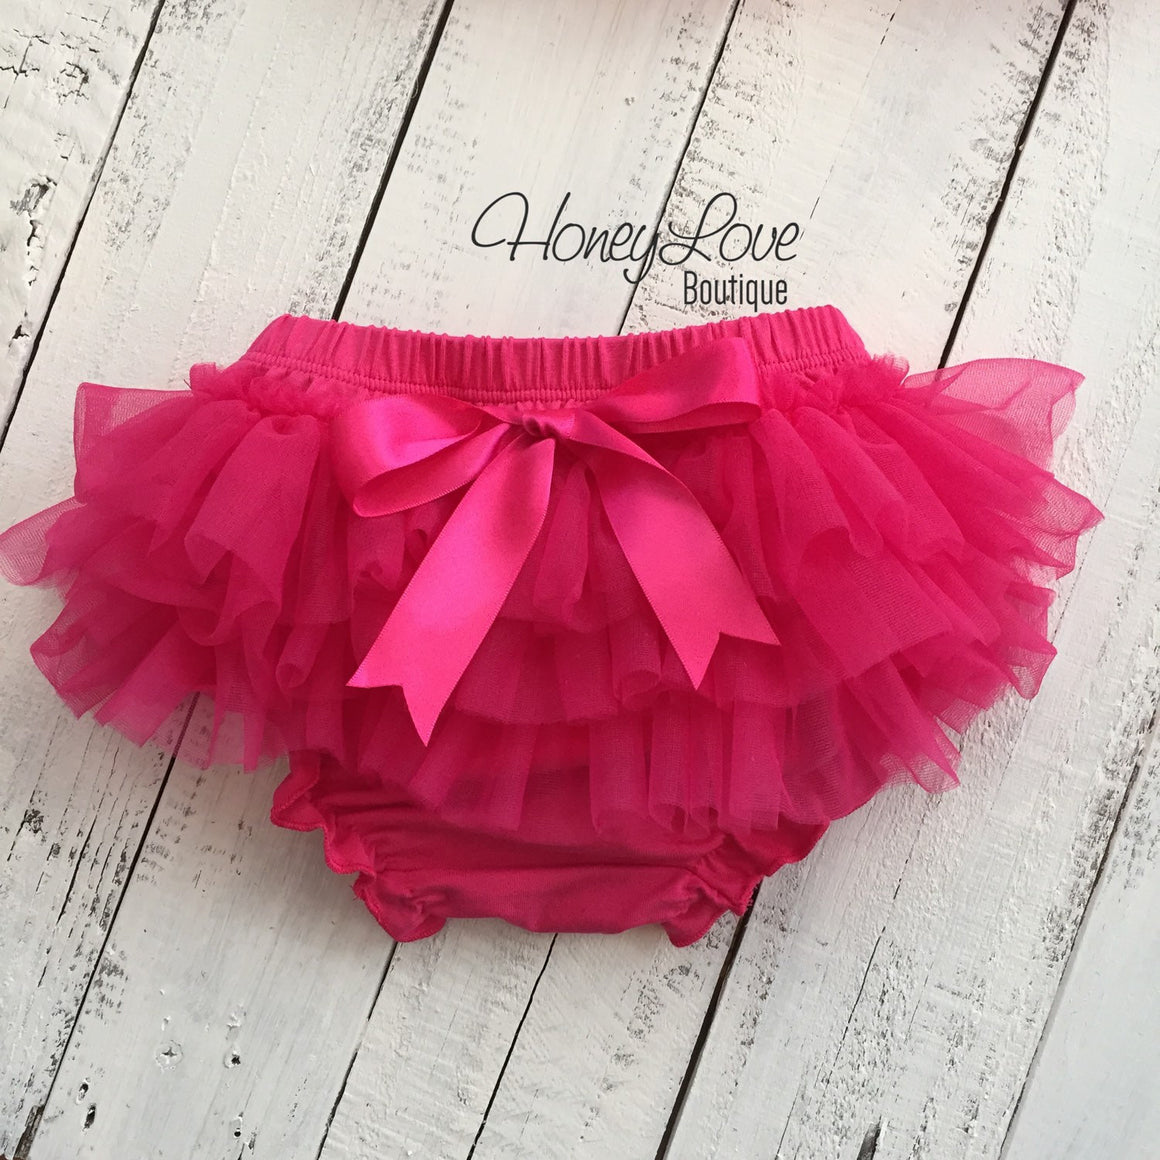 Watermelon Pink tutu skirt bloomers and silver glitter headband - HoneyLoveBoutique